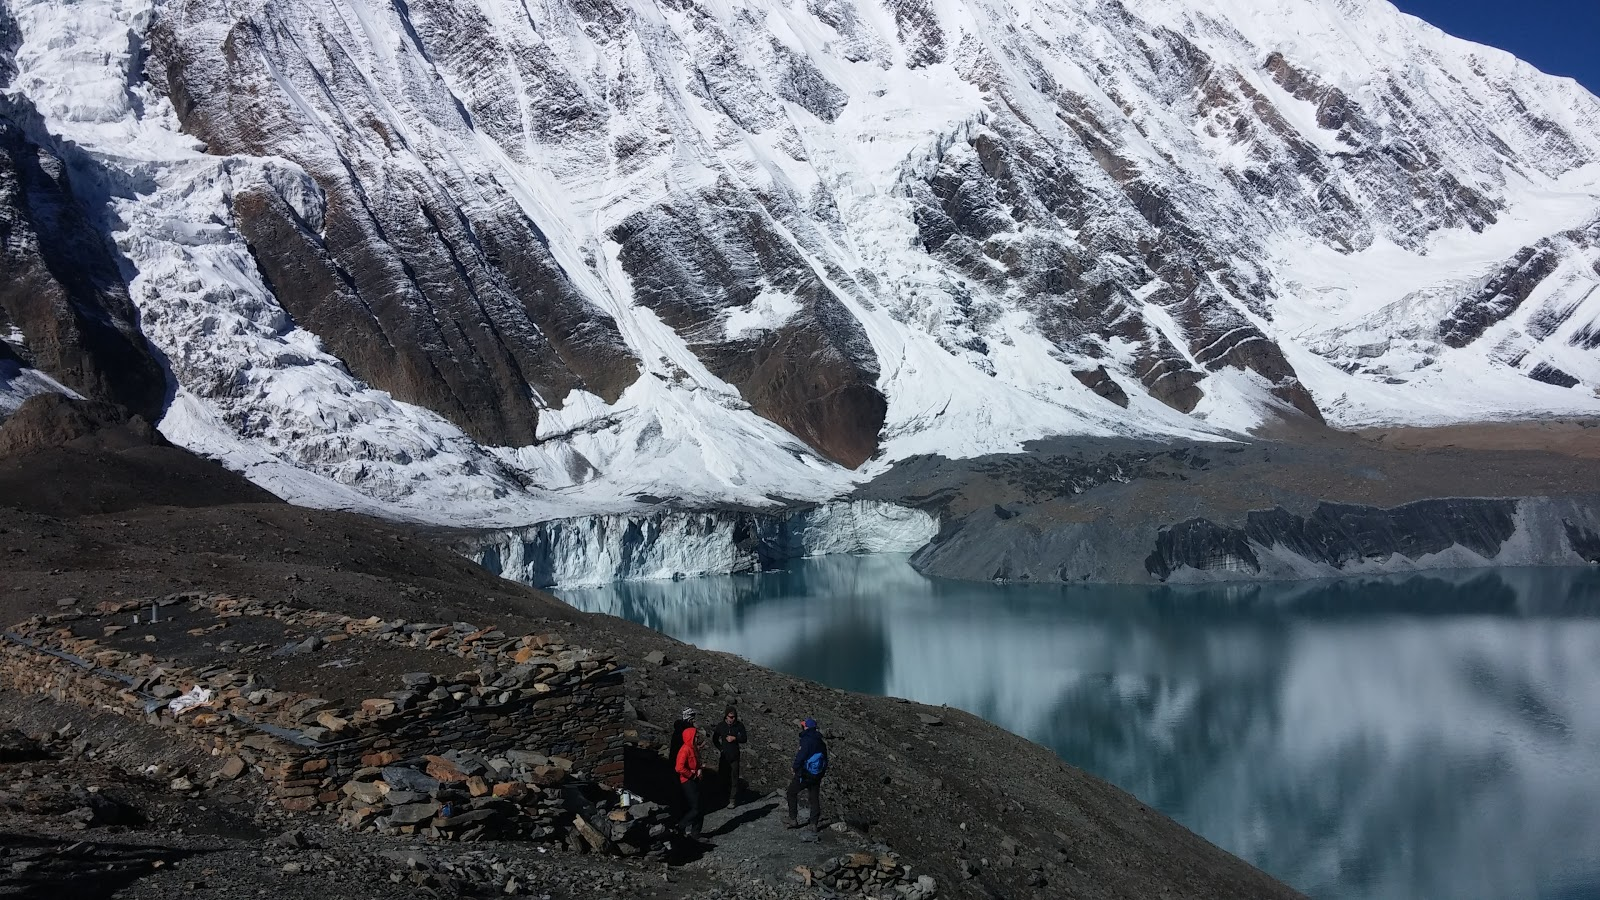 tilicho-lake-highest-altitude-lake-in-world